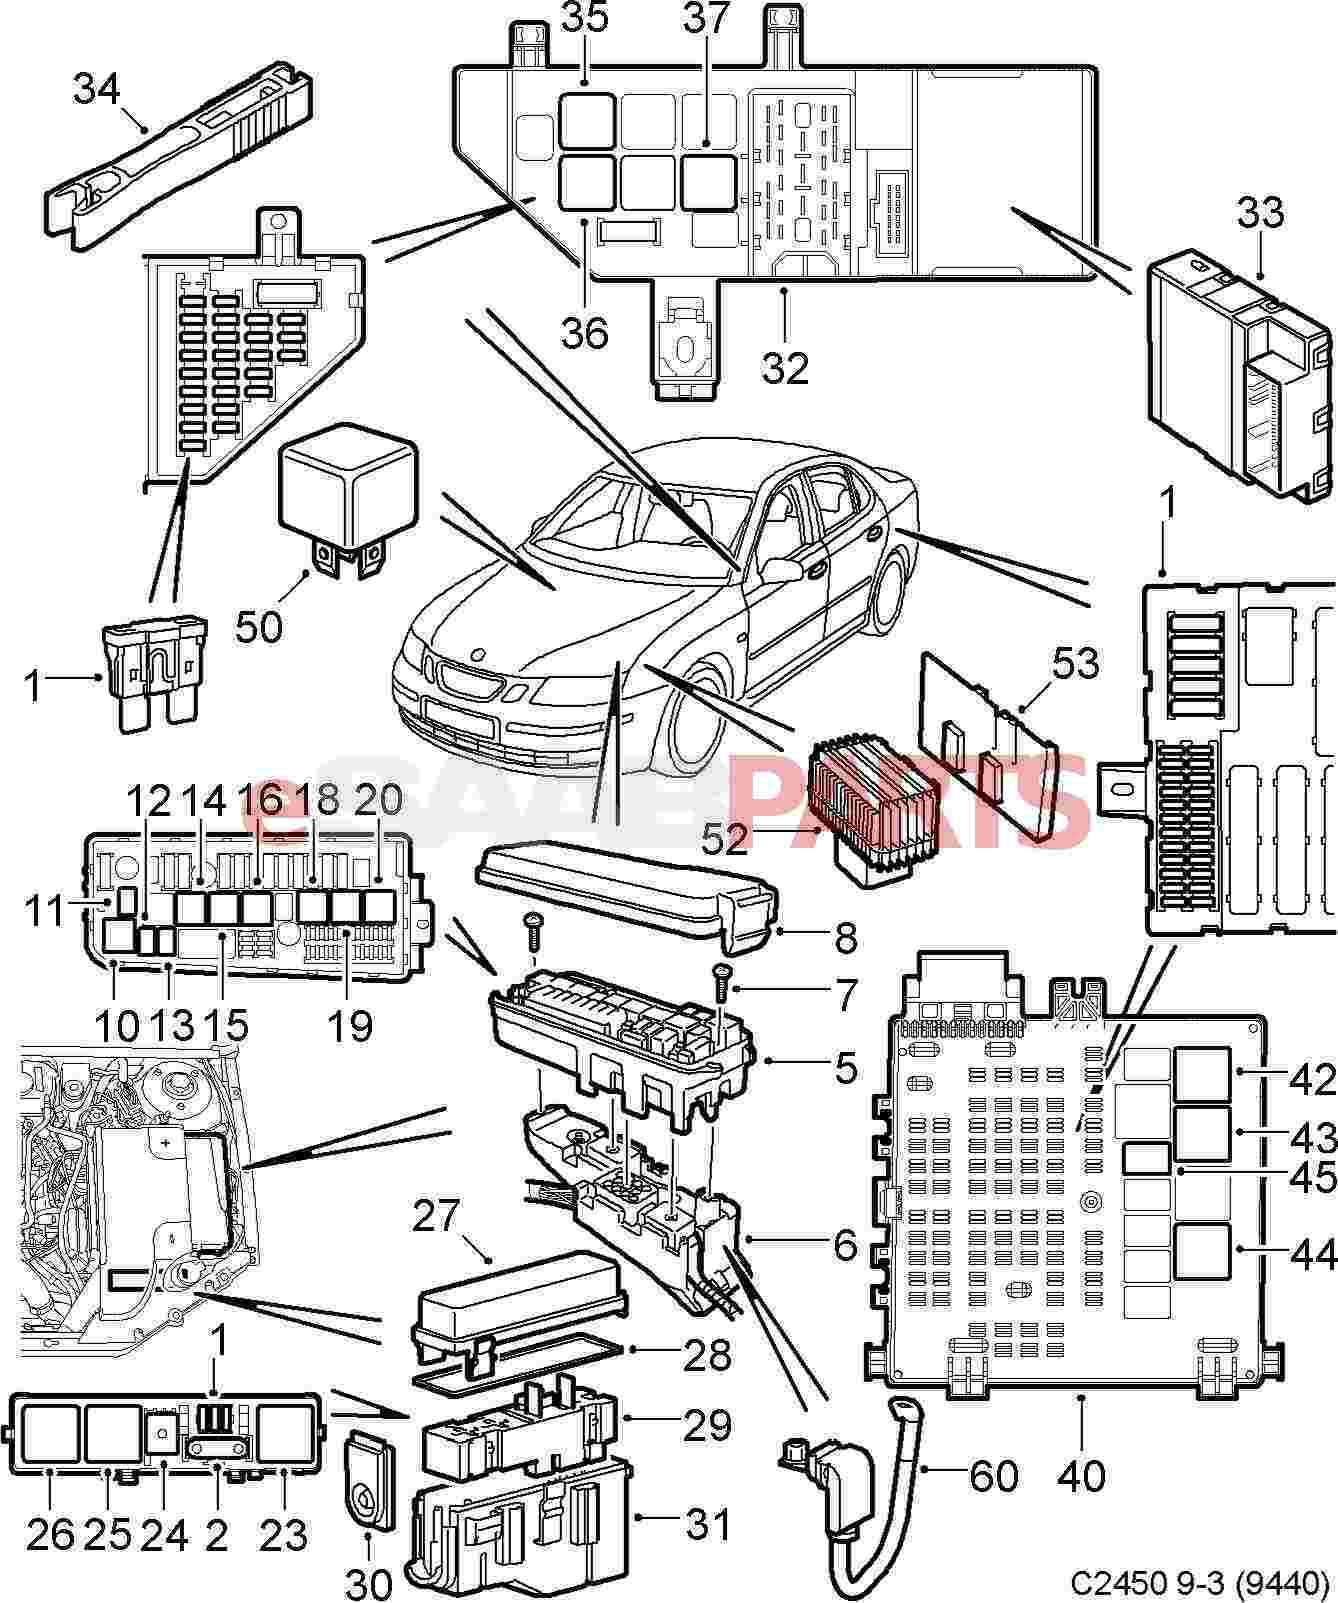 Saab Fuel Pump Wiring Diagram Electrical Diagrams 9 3 Enthusiast U2022 Rh Rasalibre Co 87 Chevy Truck Ford